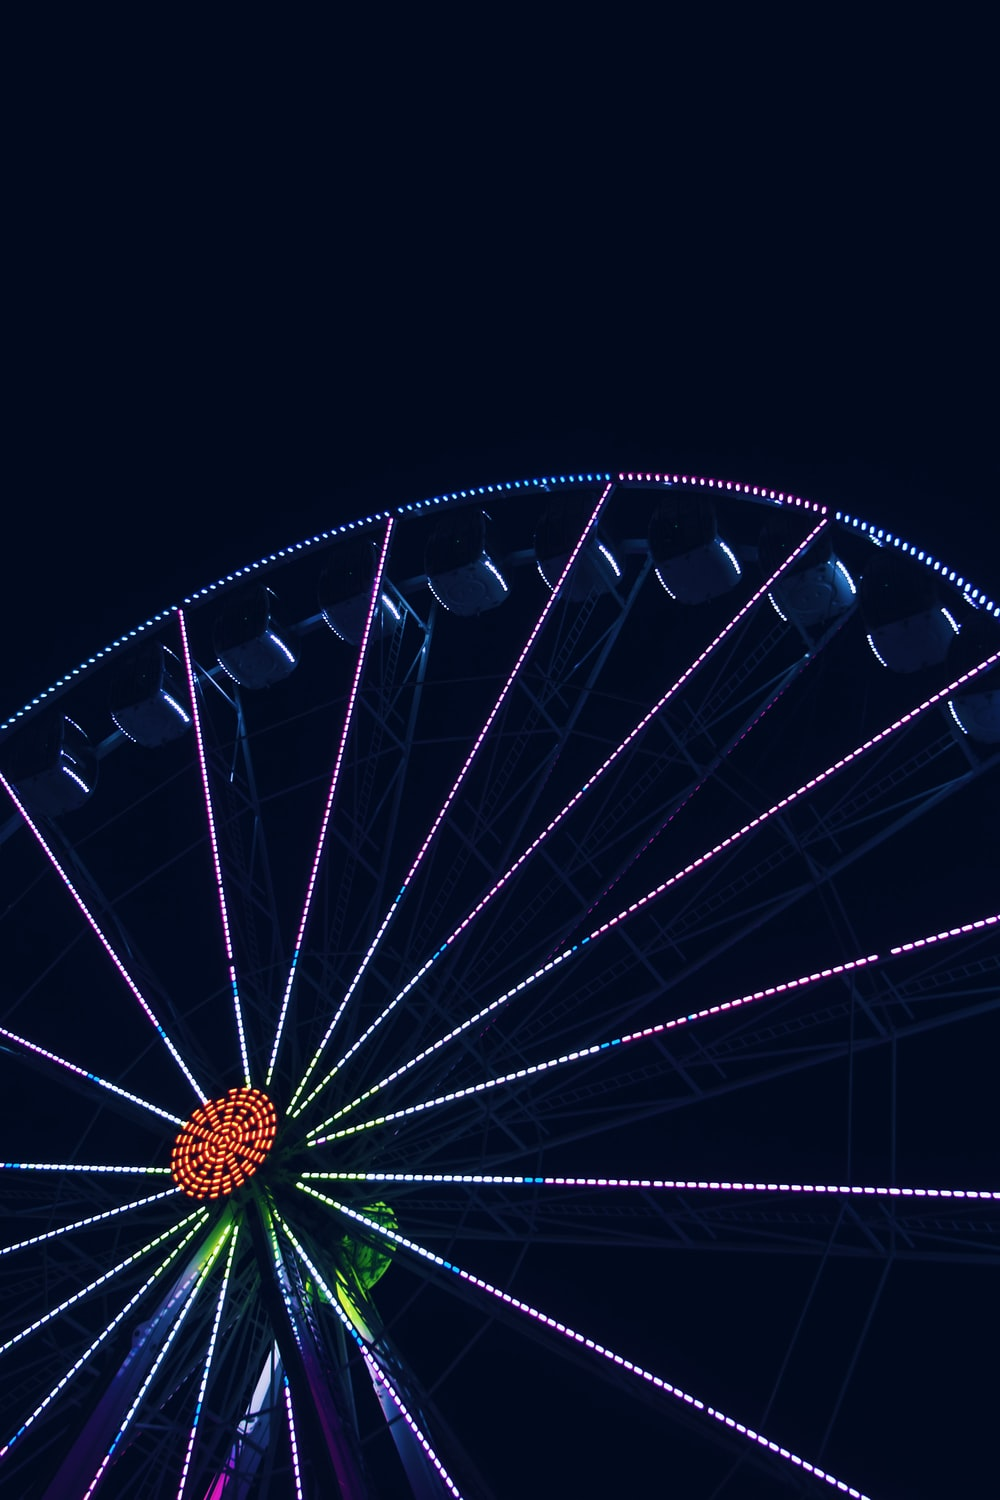 low-angle photography of Ferris wheel at night